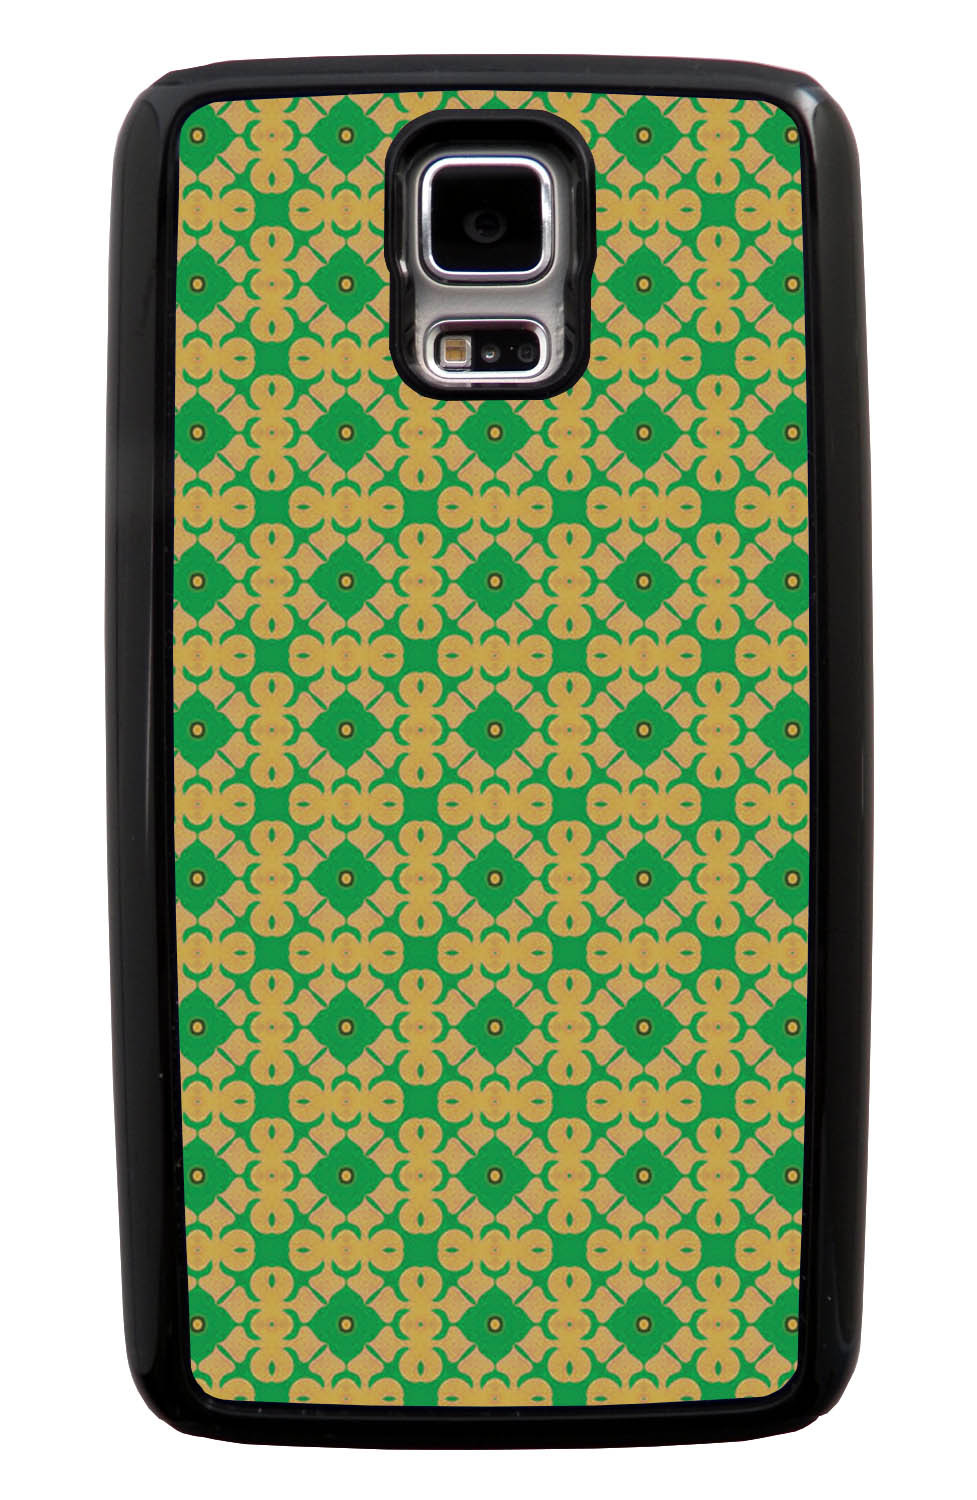 Samsung Galaxy S5 / SV Abstract Case - Green and Gold - Flower Petal Like - Black Tough Hybrid Case